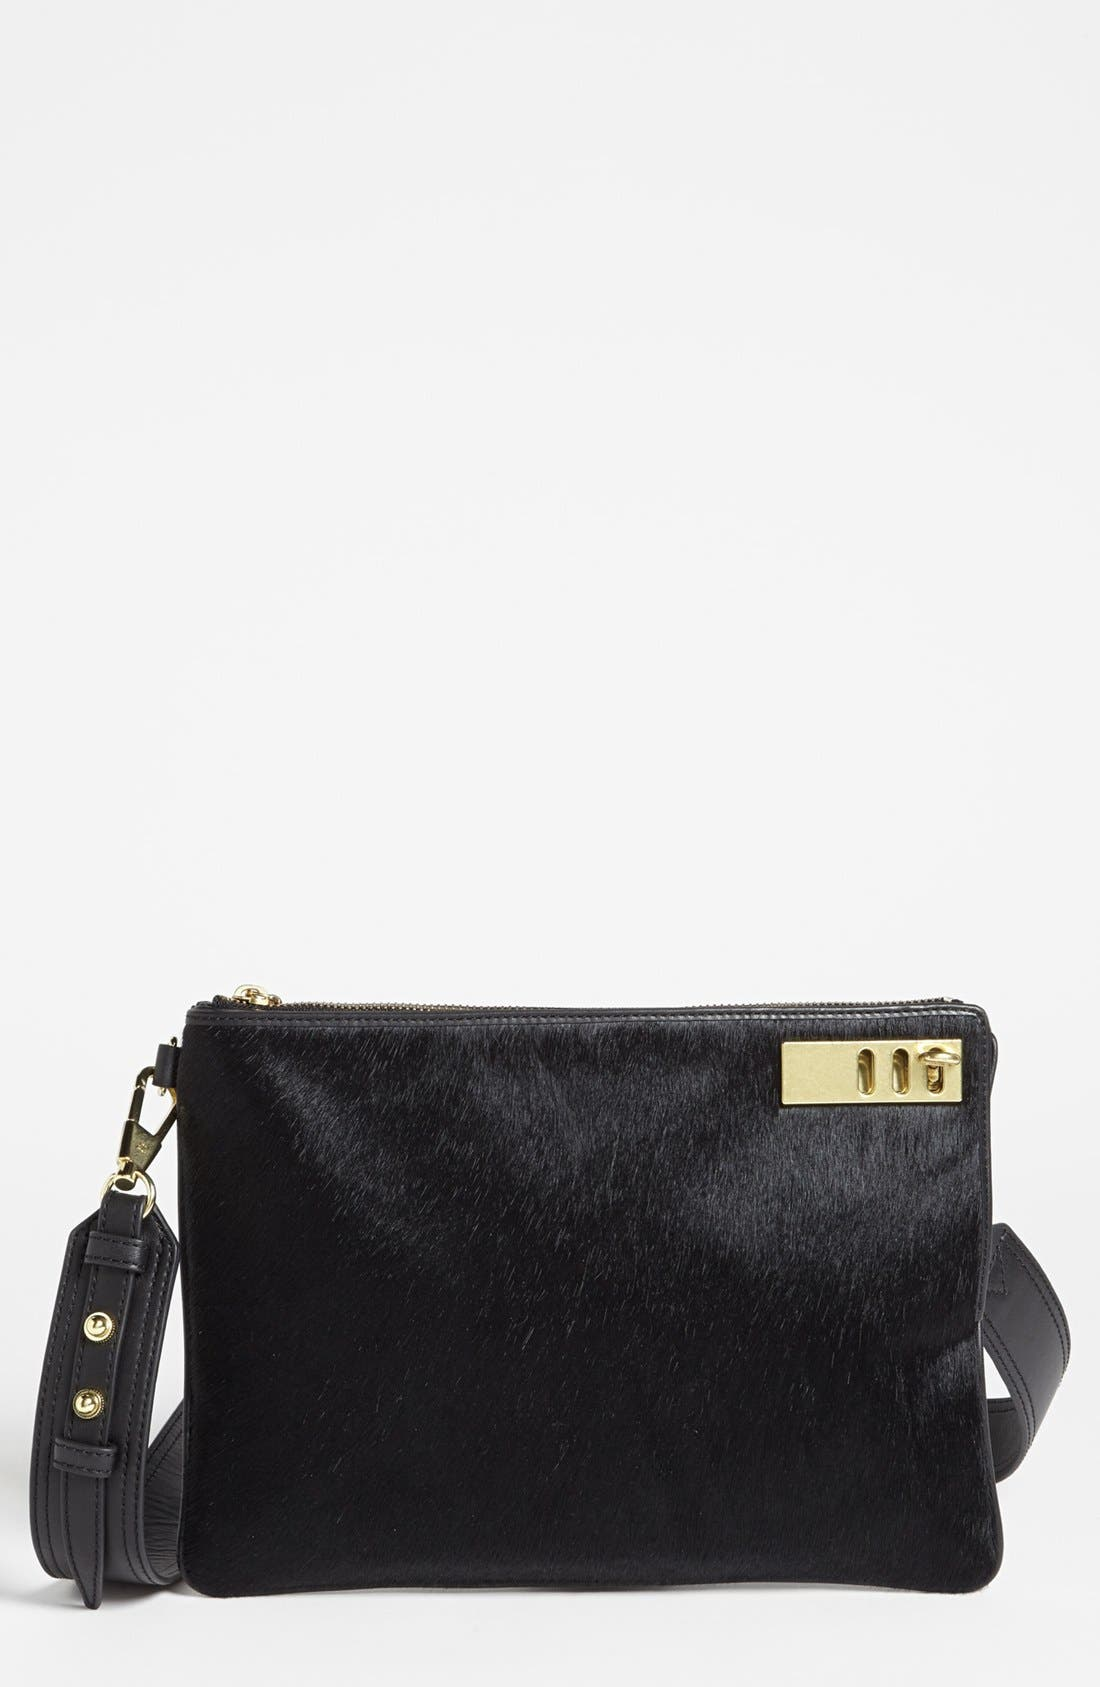 Main Image - 3.1 Phillip Lim 'Racer' Calf Hair & Leather Clutch